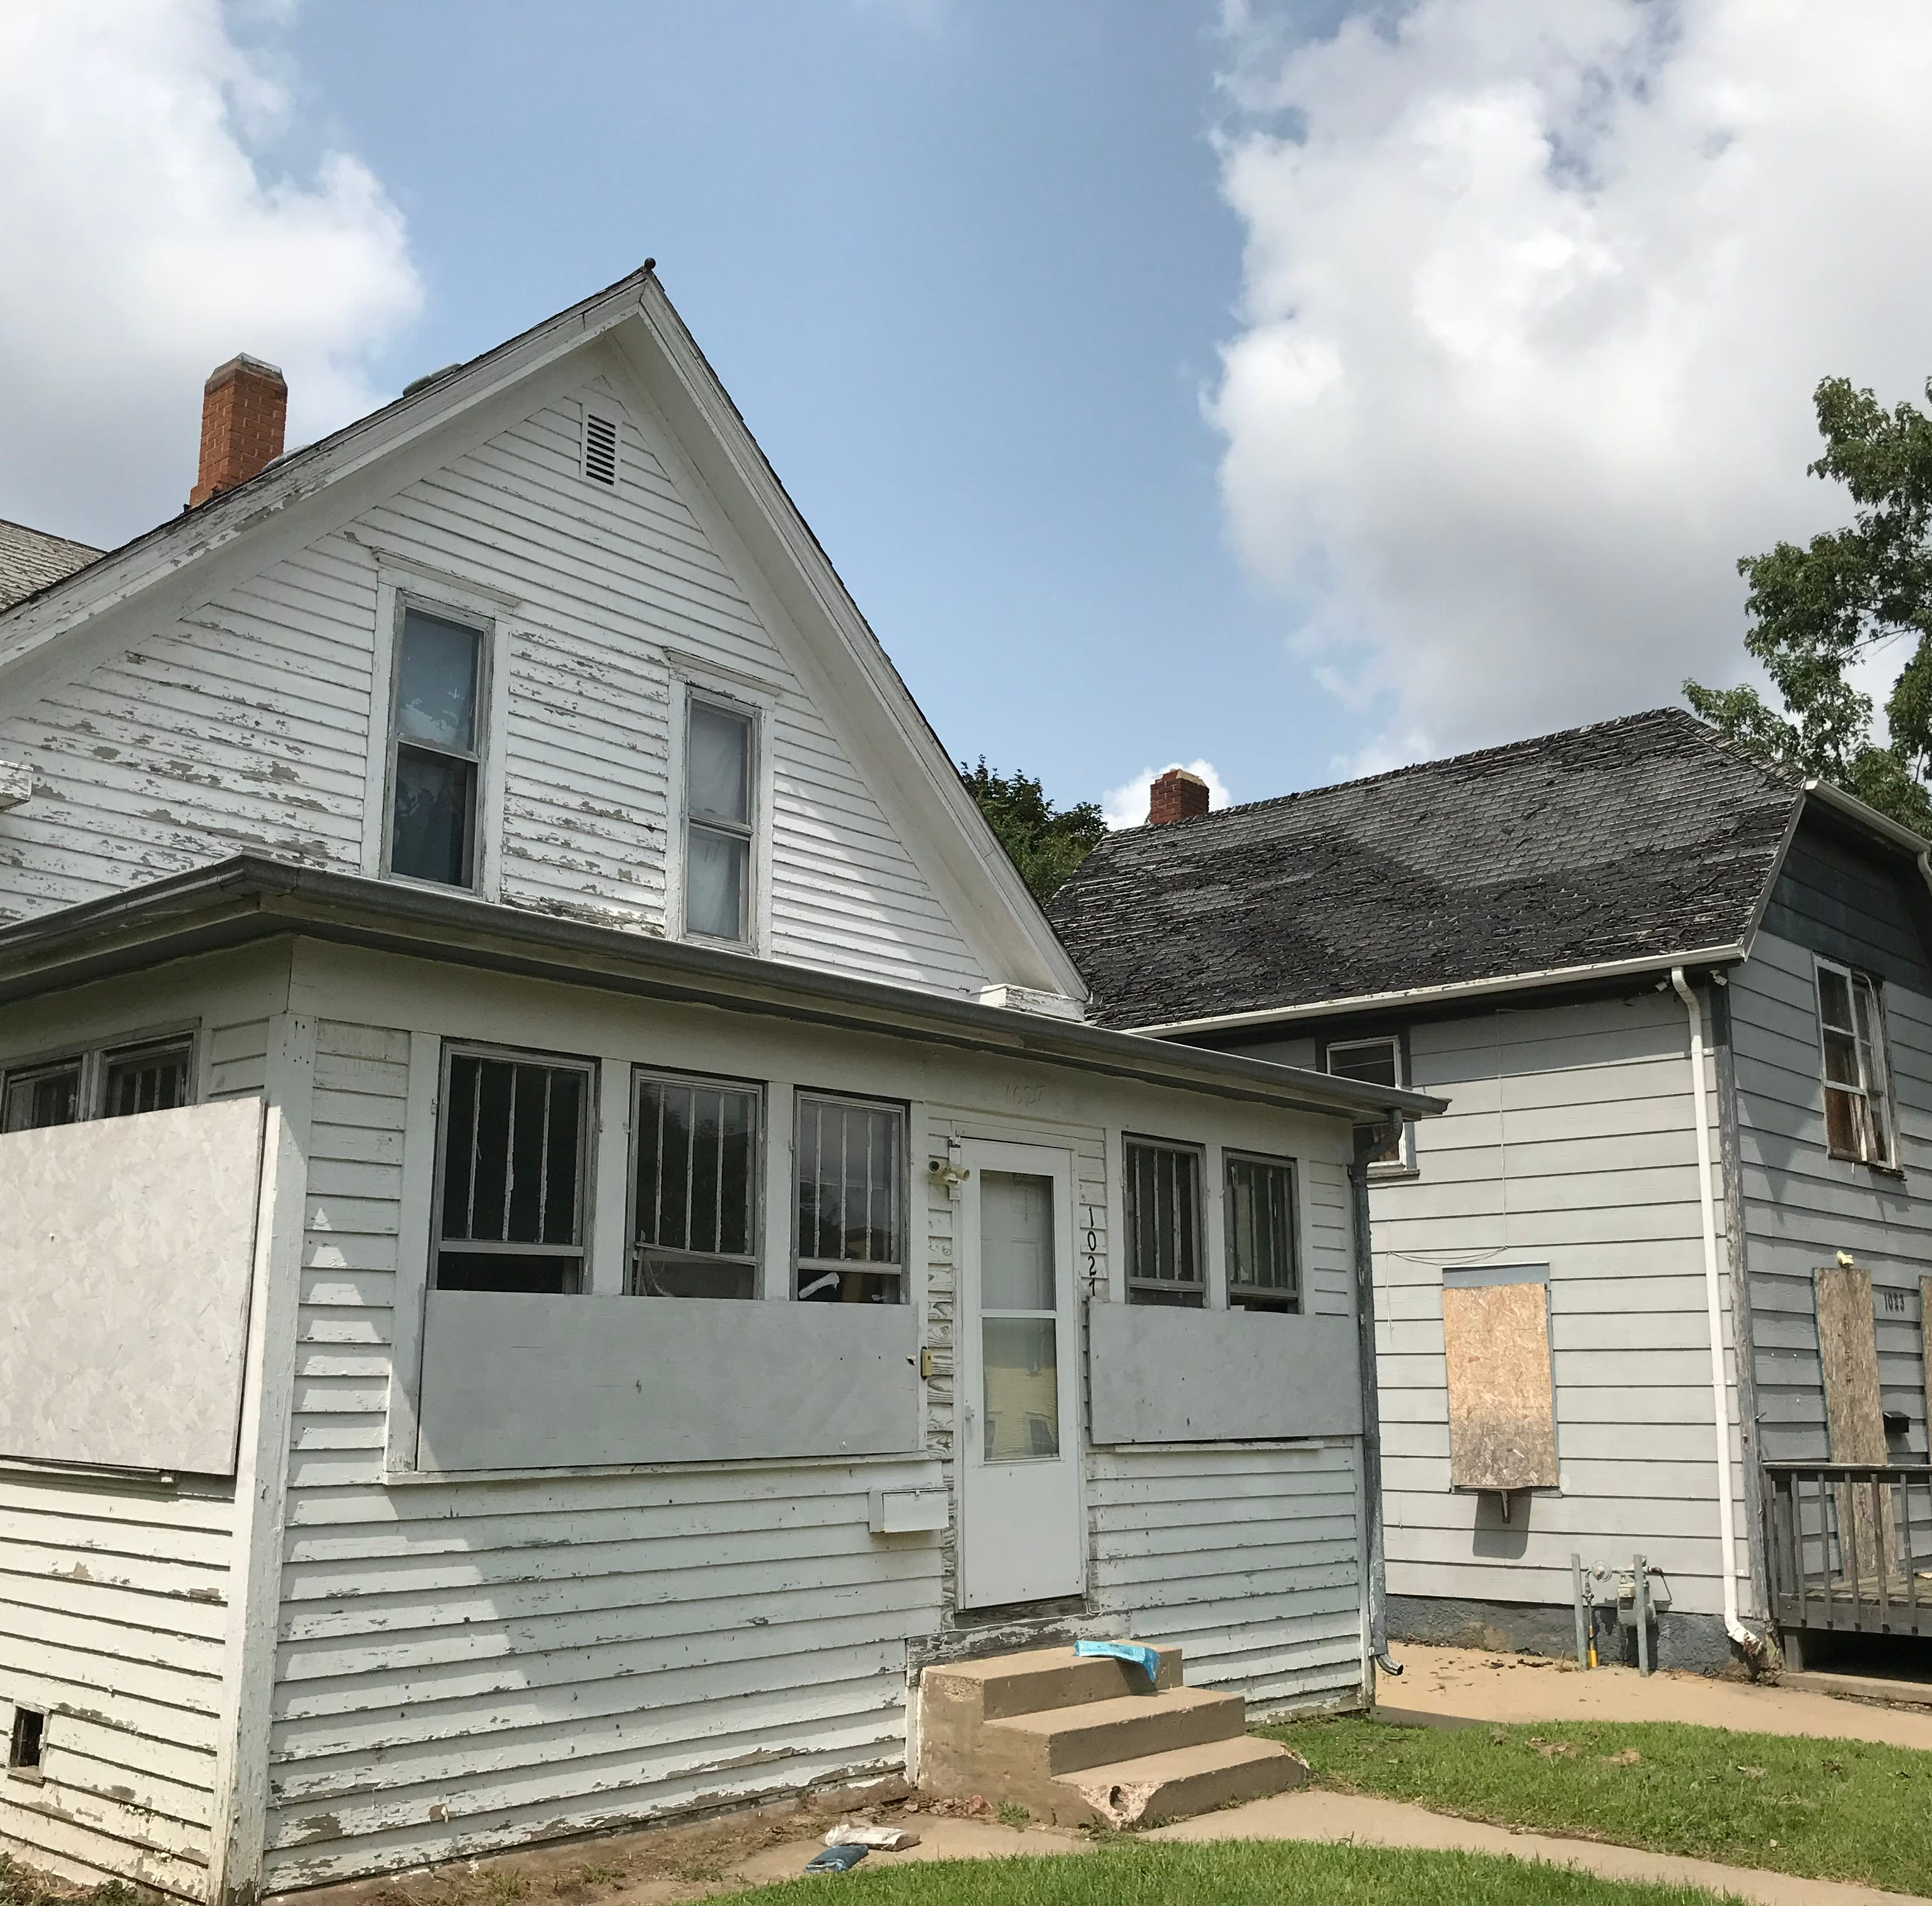 Homes in the Sherman Historic District could be demolished if the Sioux Falls City Council decides they're beyond repair.